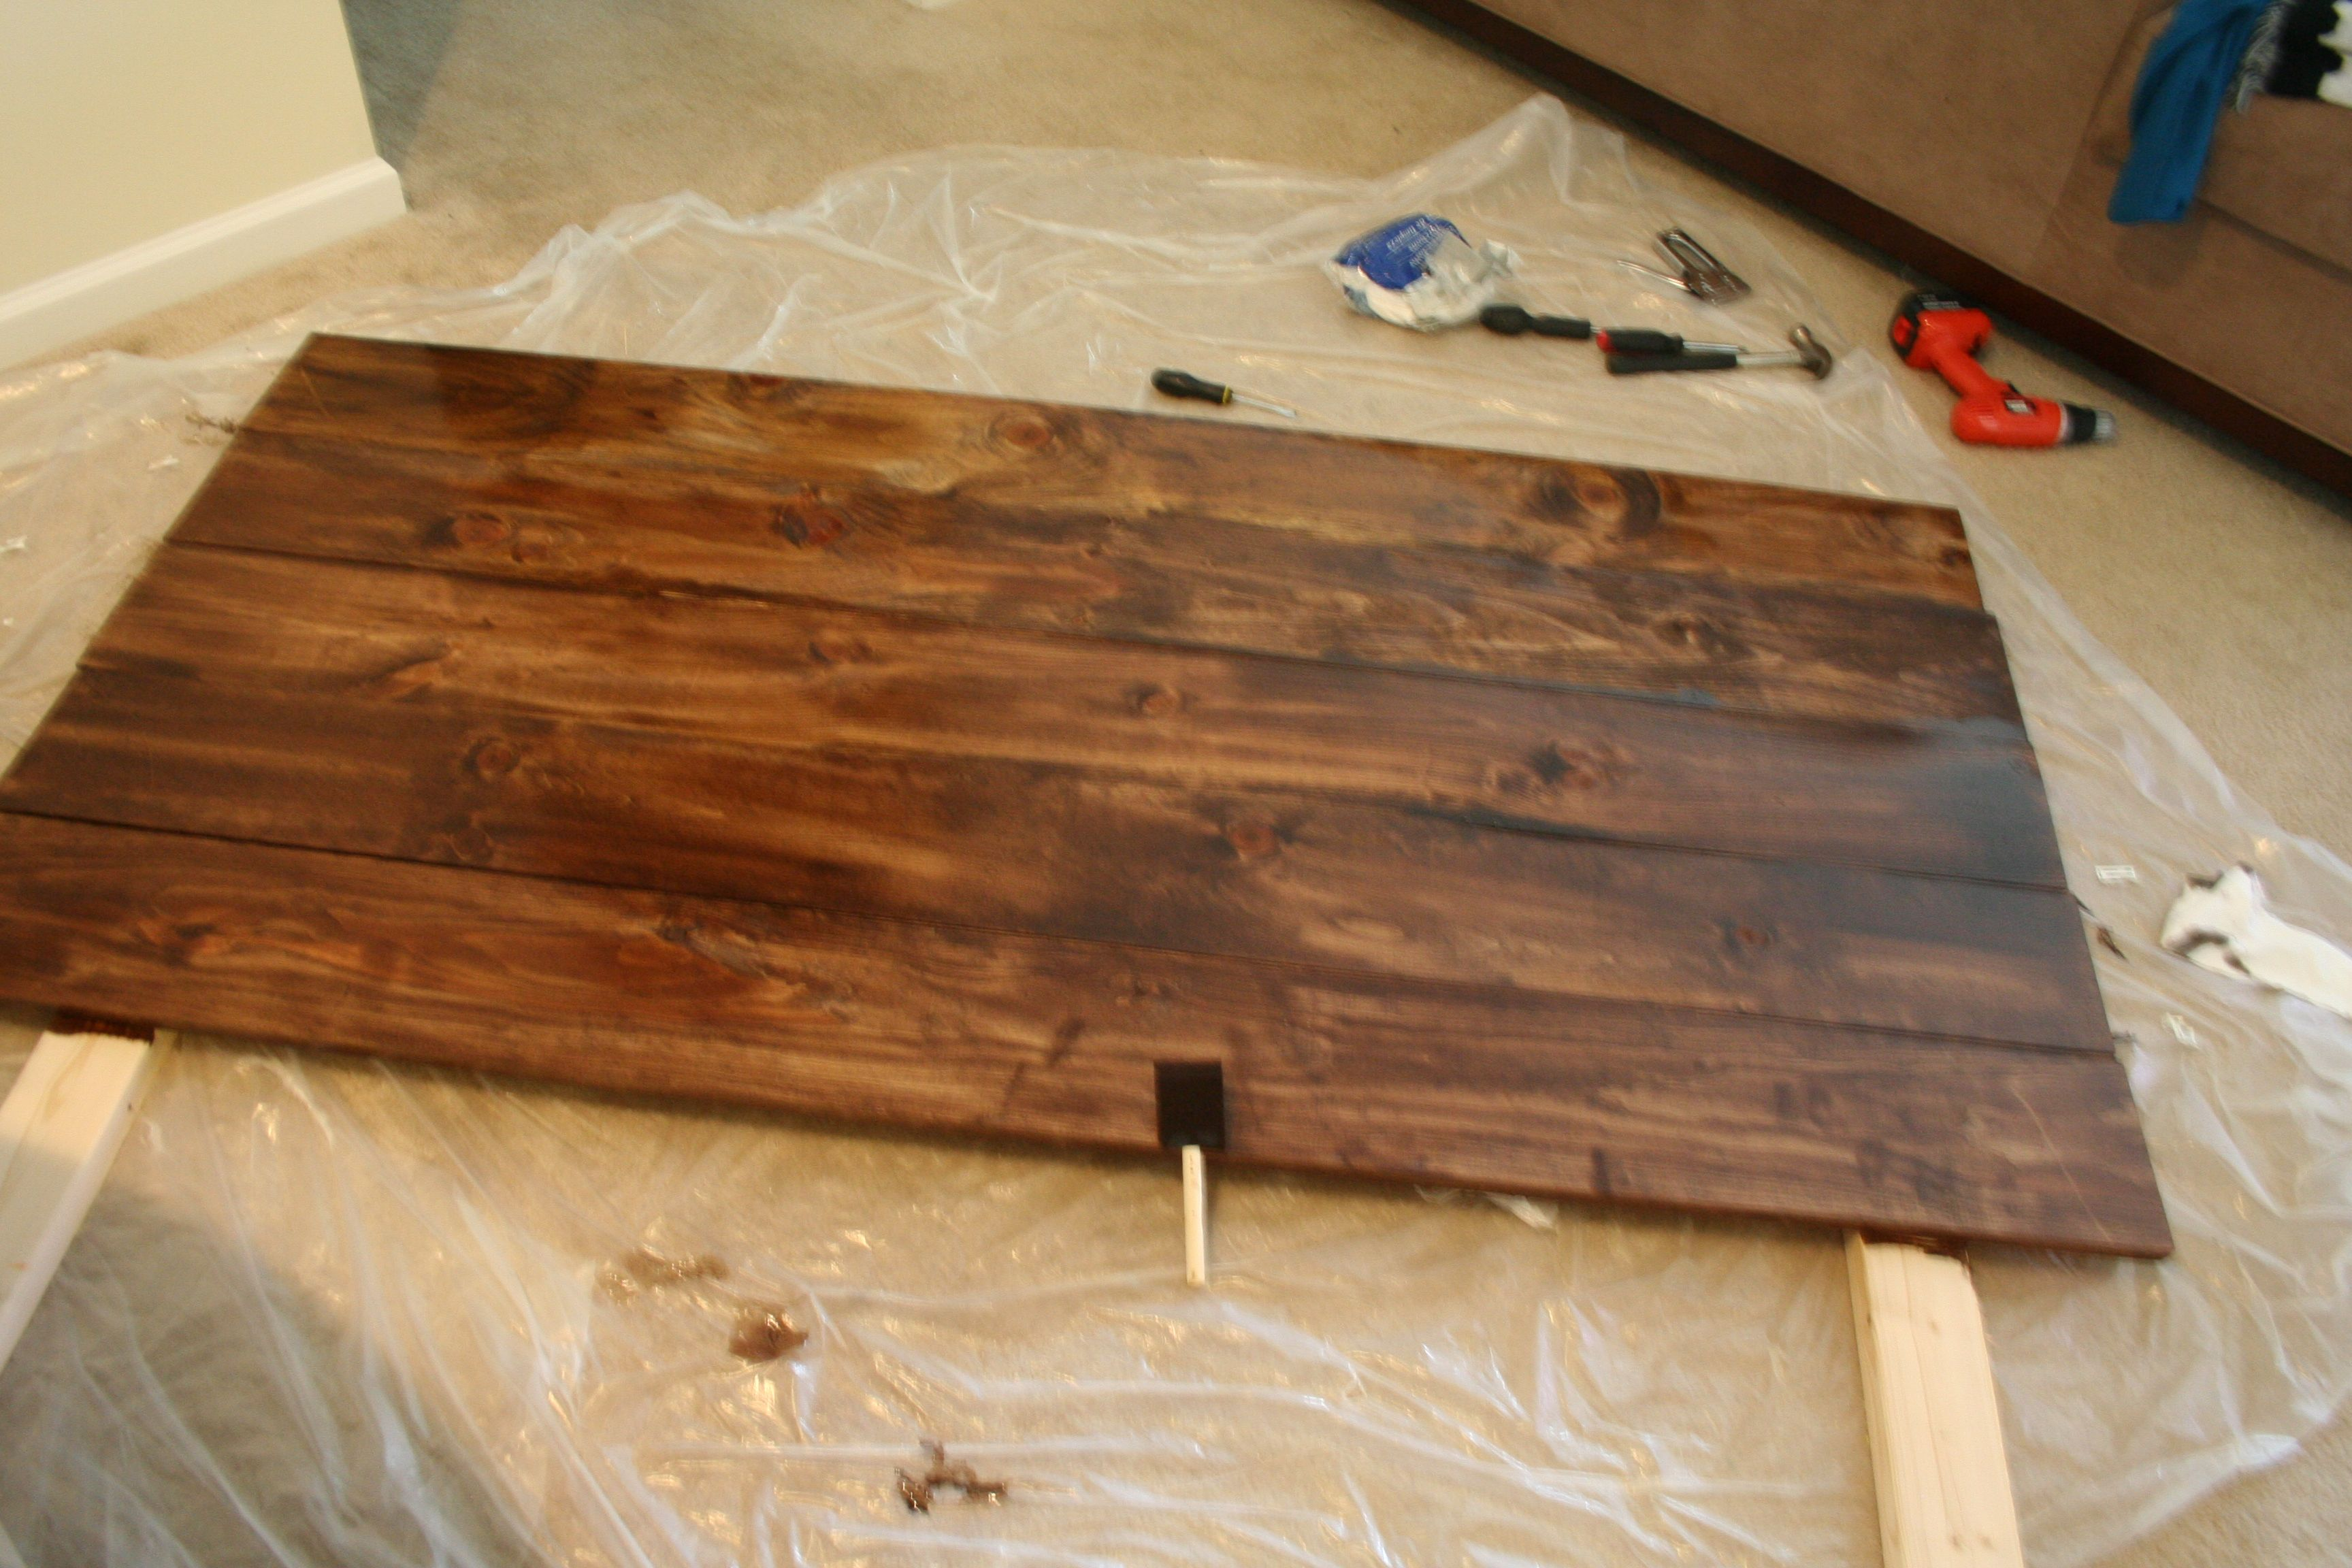 Early American Bedroom Furniture Minwax Special Walnut Stain On Pine Wood Finishes